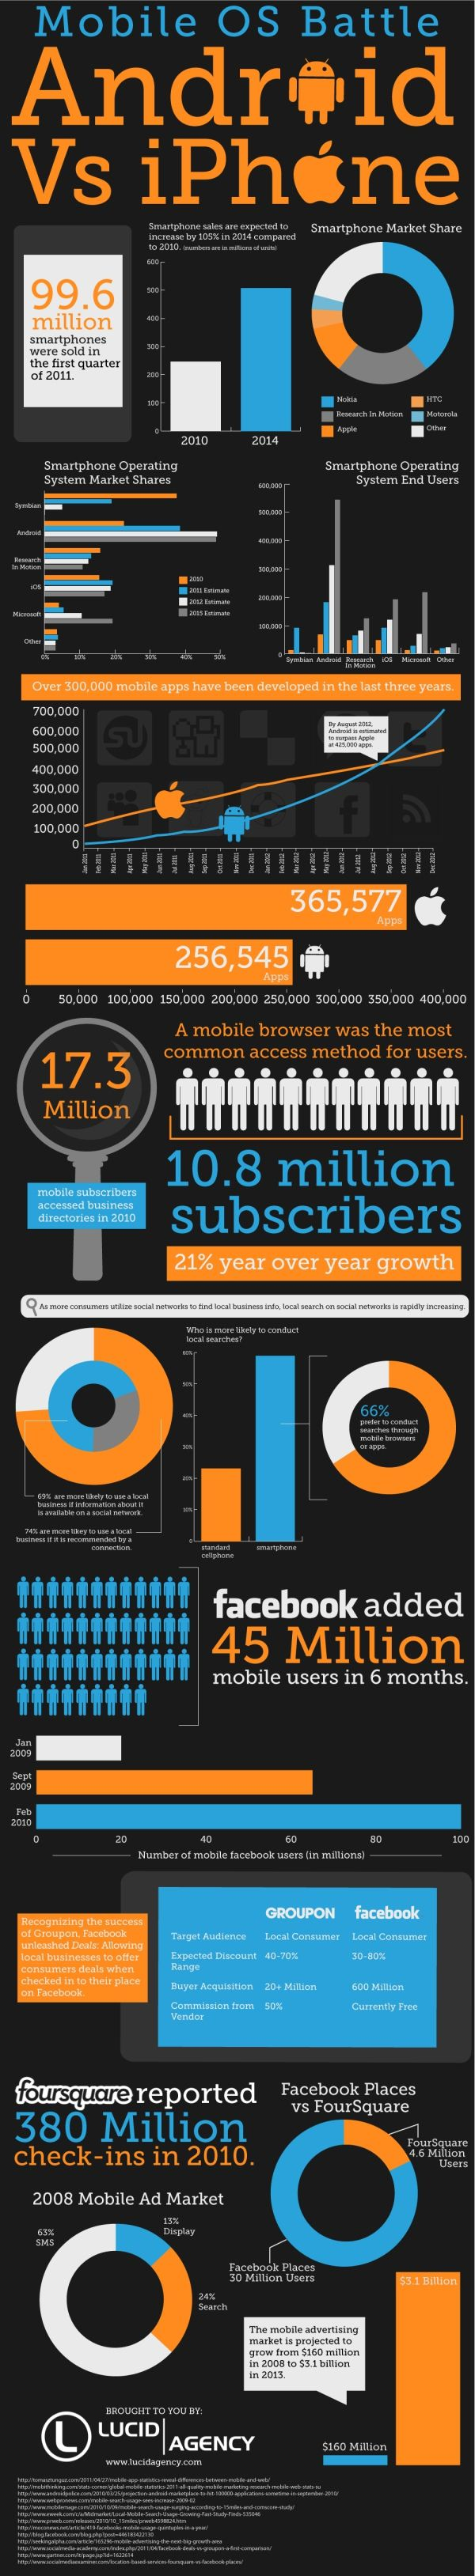 Mobile OS Battle - iPhone versus Andriod #apps #infographics via - Lucidagency